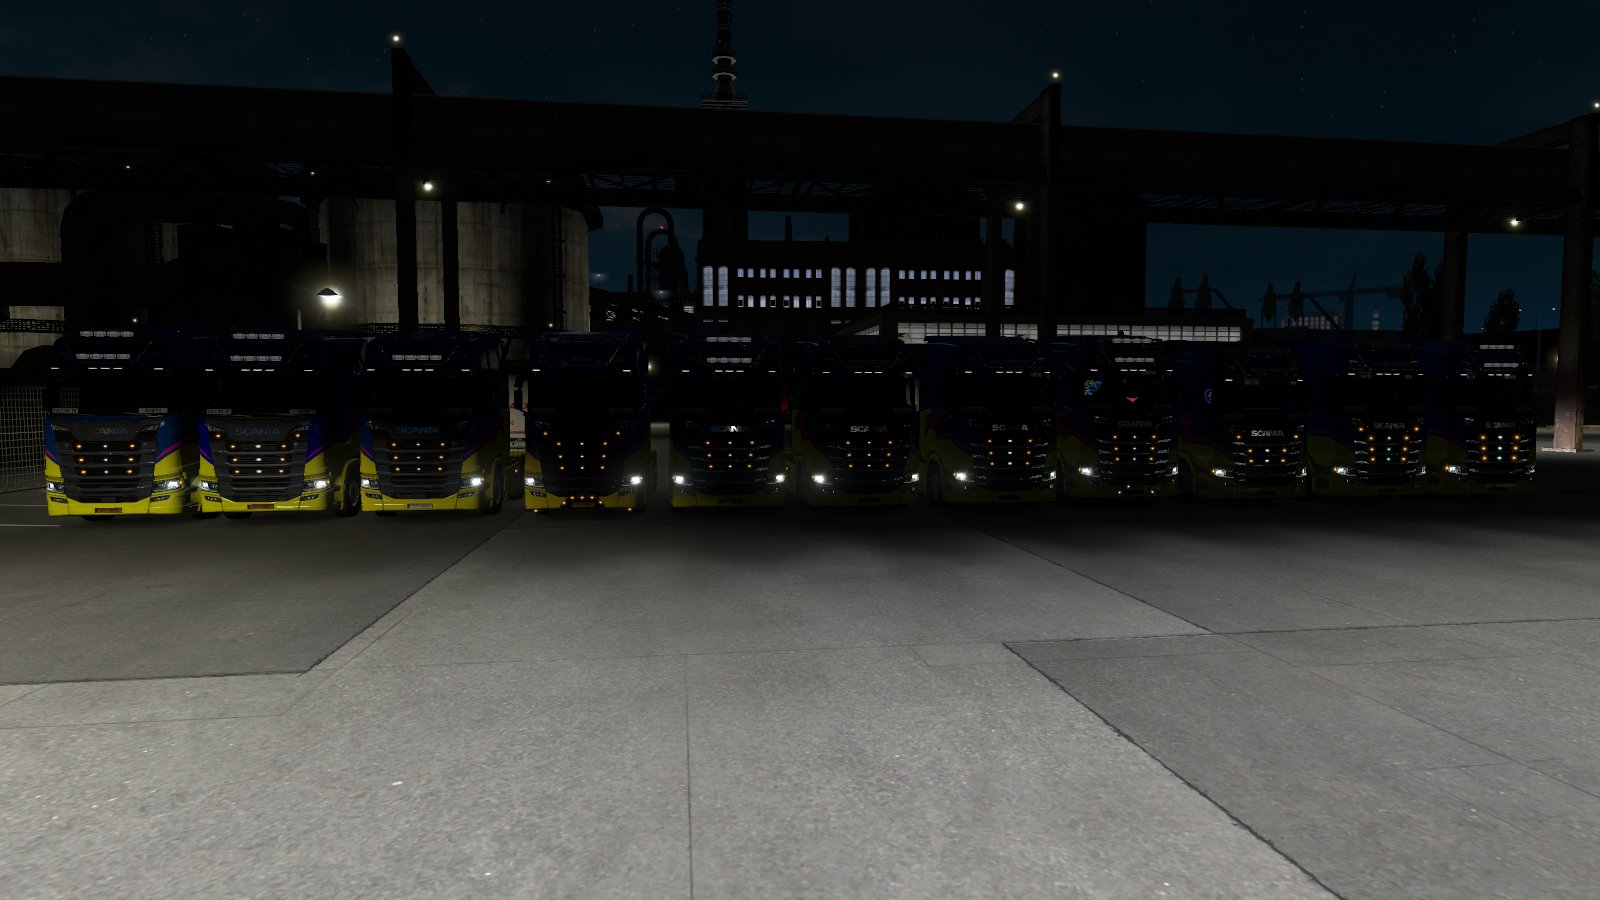 ets2_20190504_184946_00.png